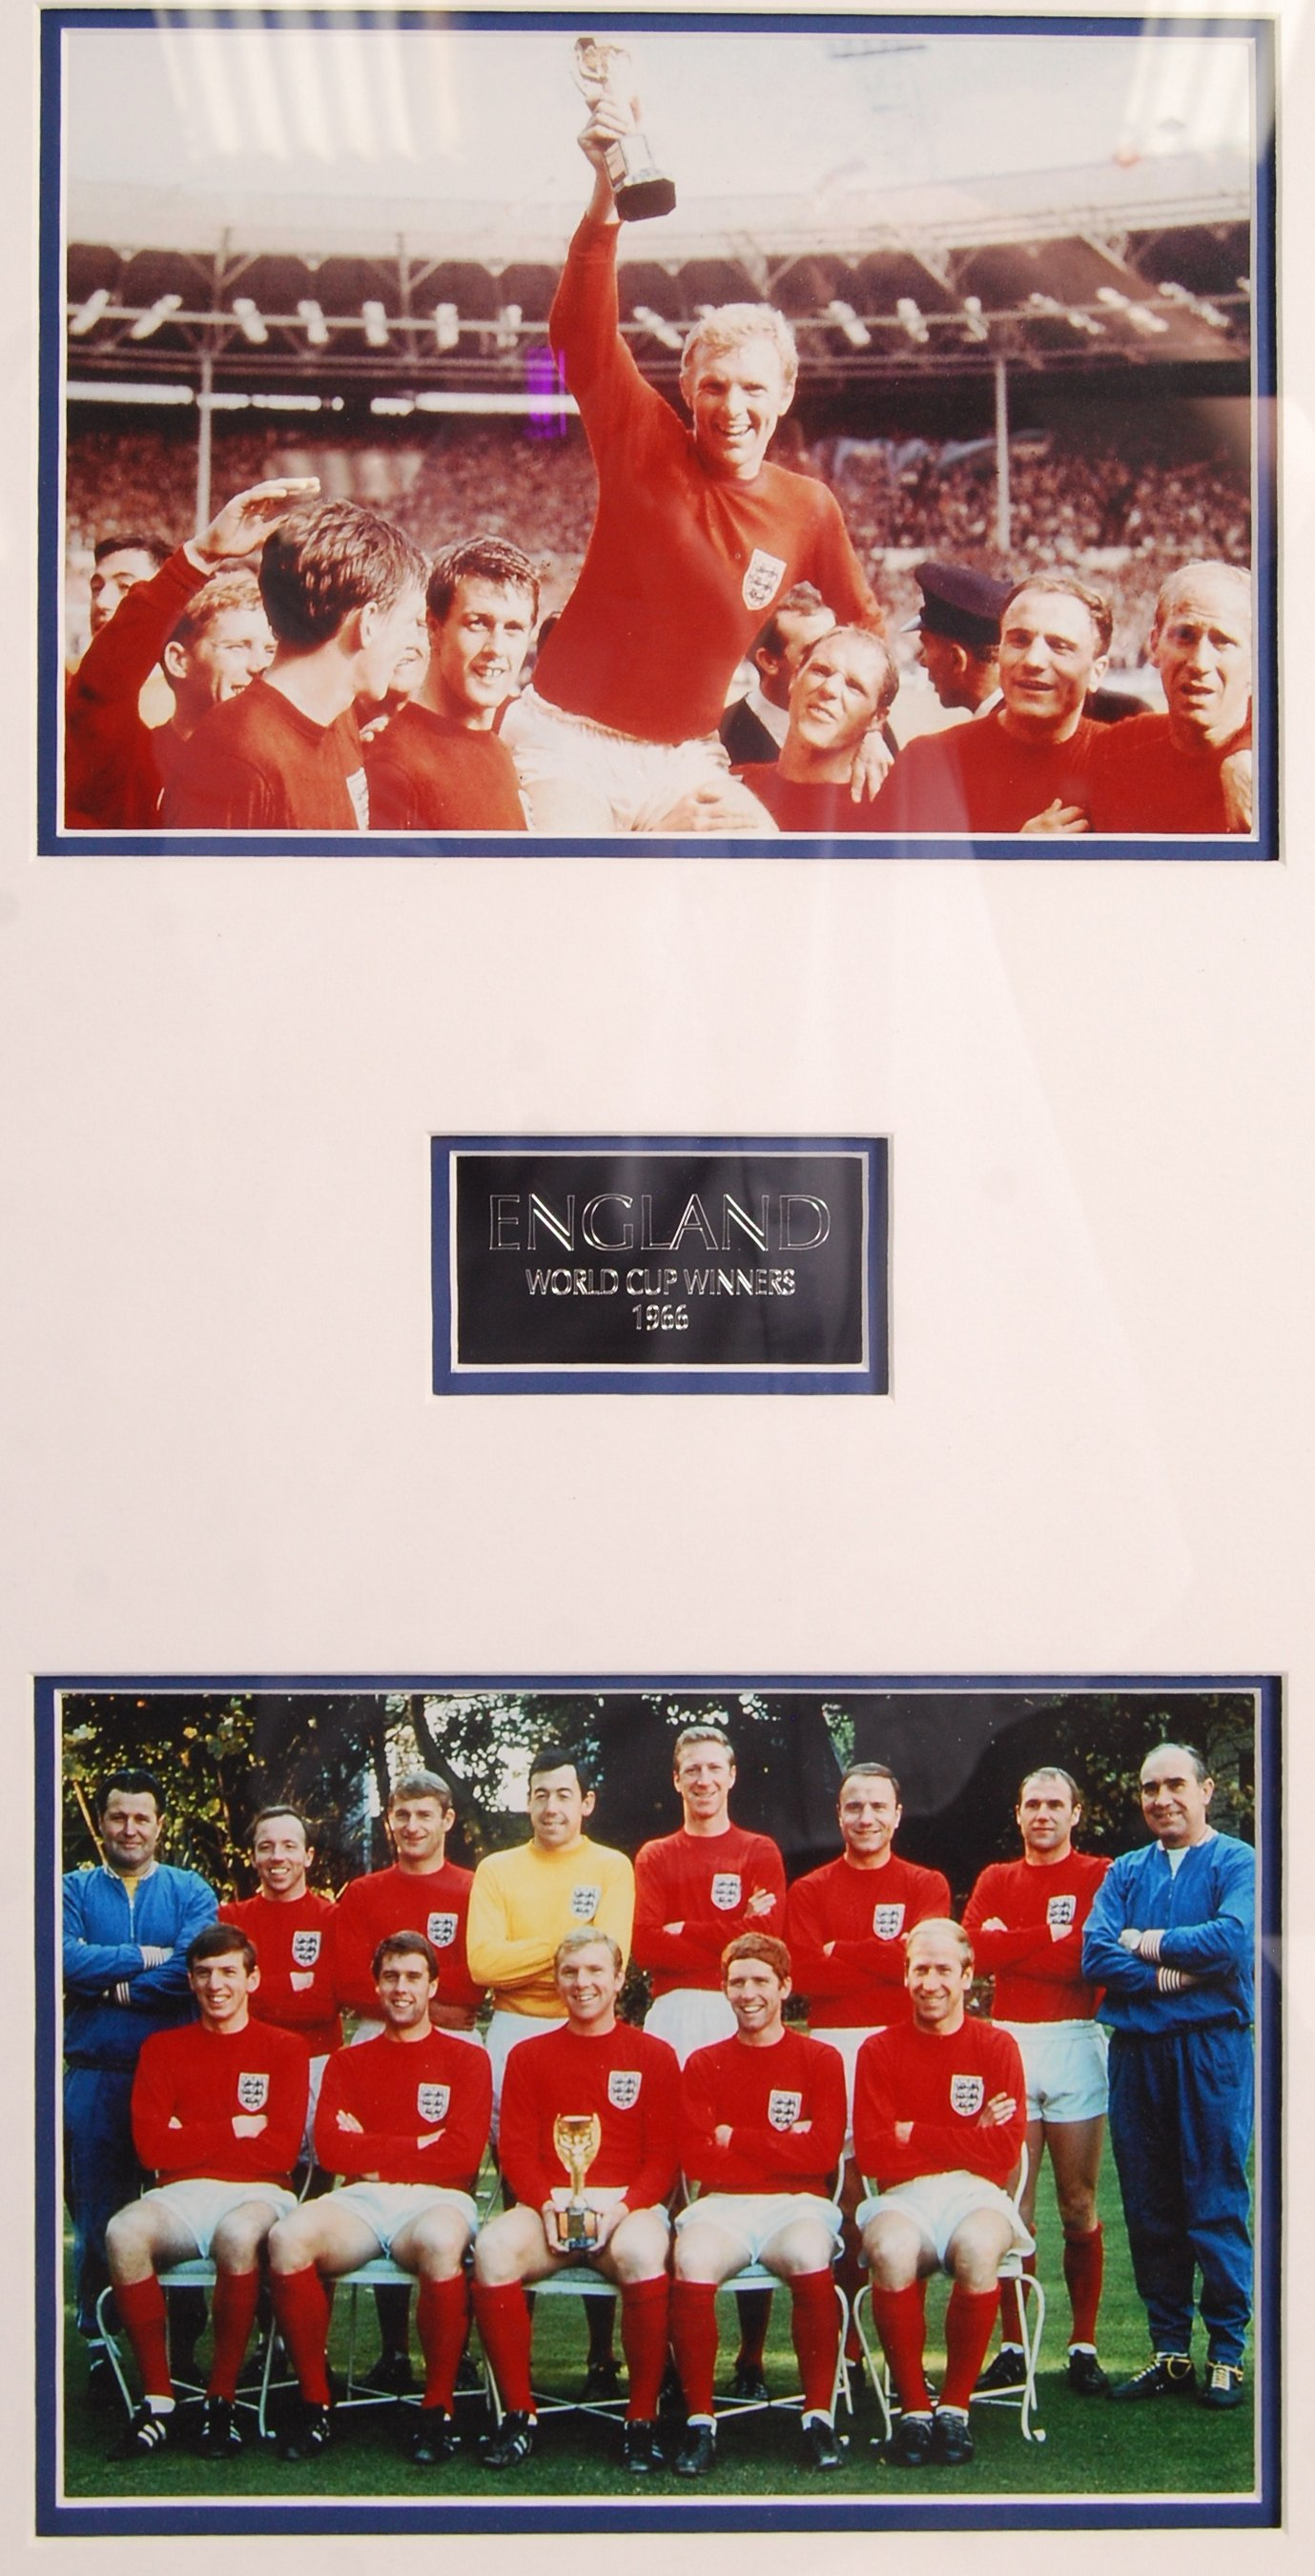 WORLD CUP 1966 ENGLAND SQUAD AUTOGRAPHED REPLICA S - Image 3 of 4